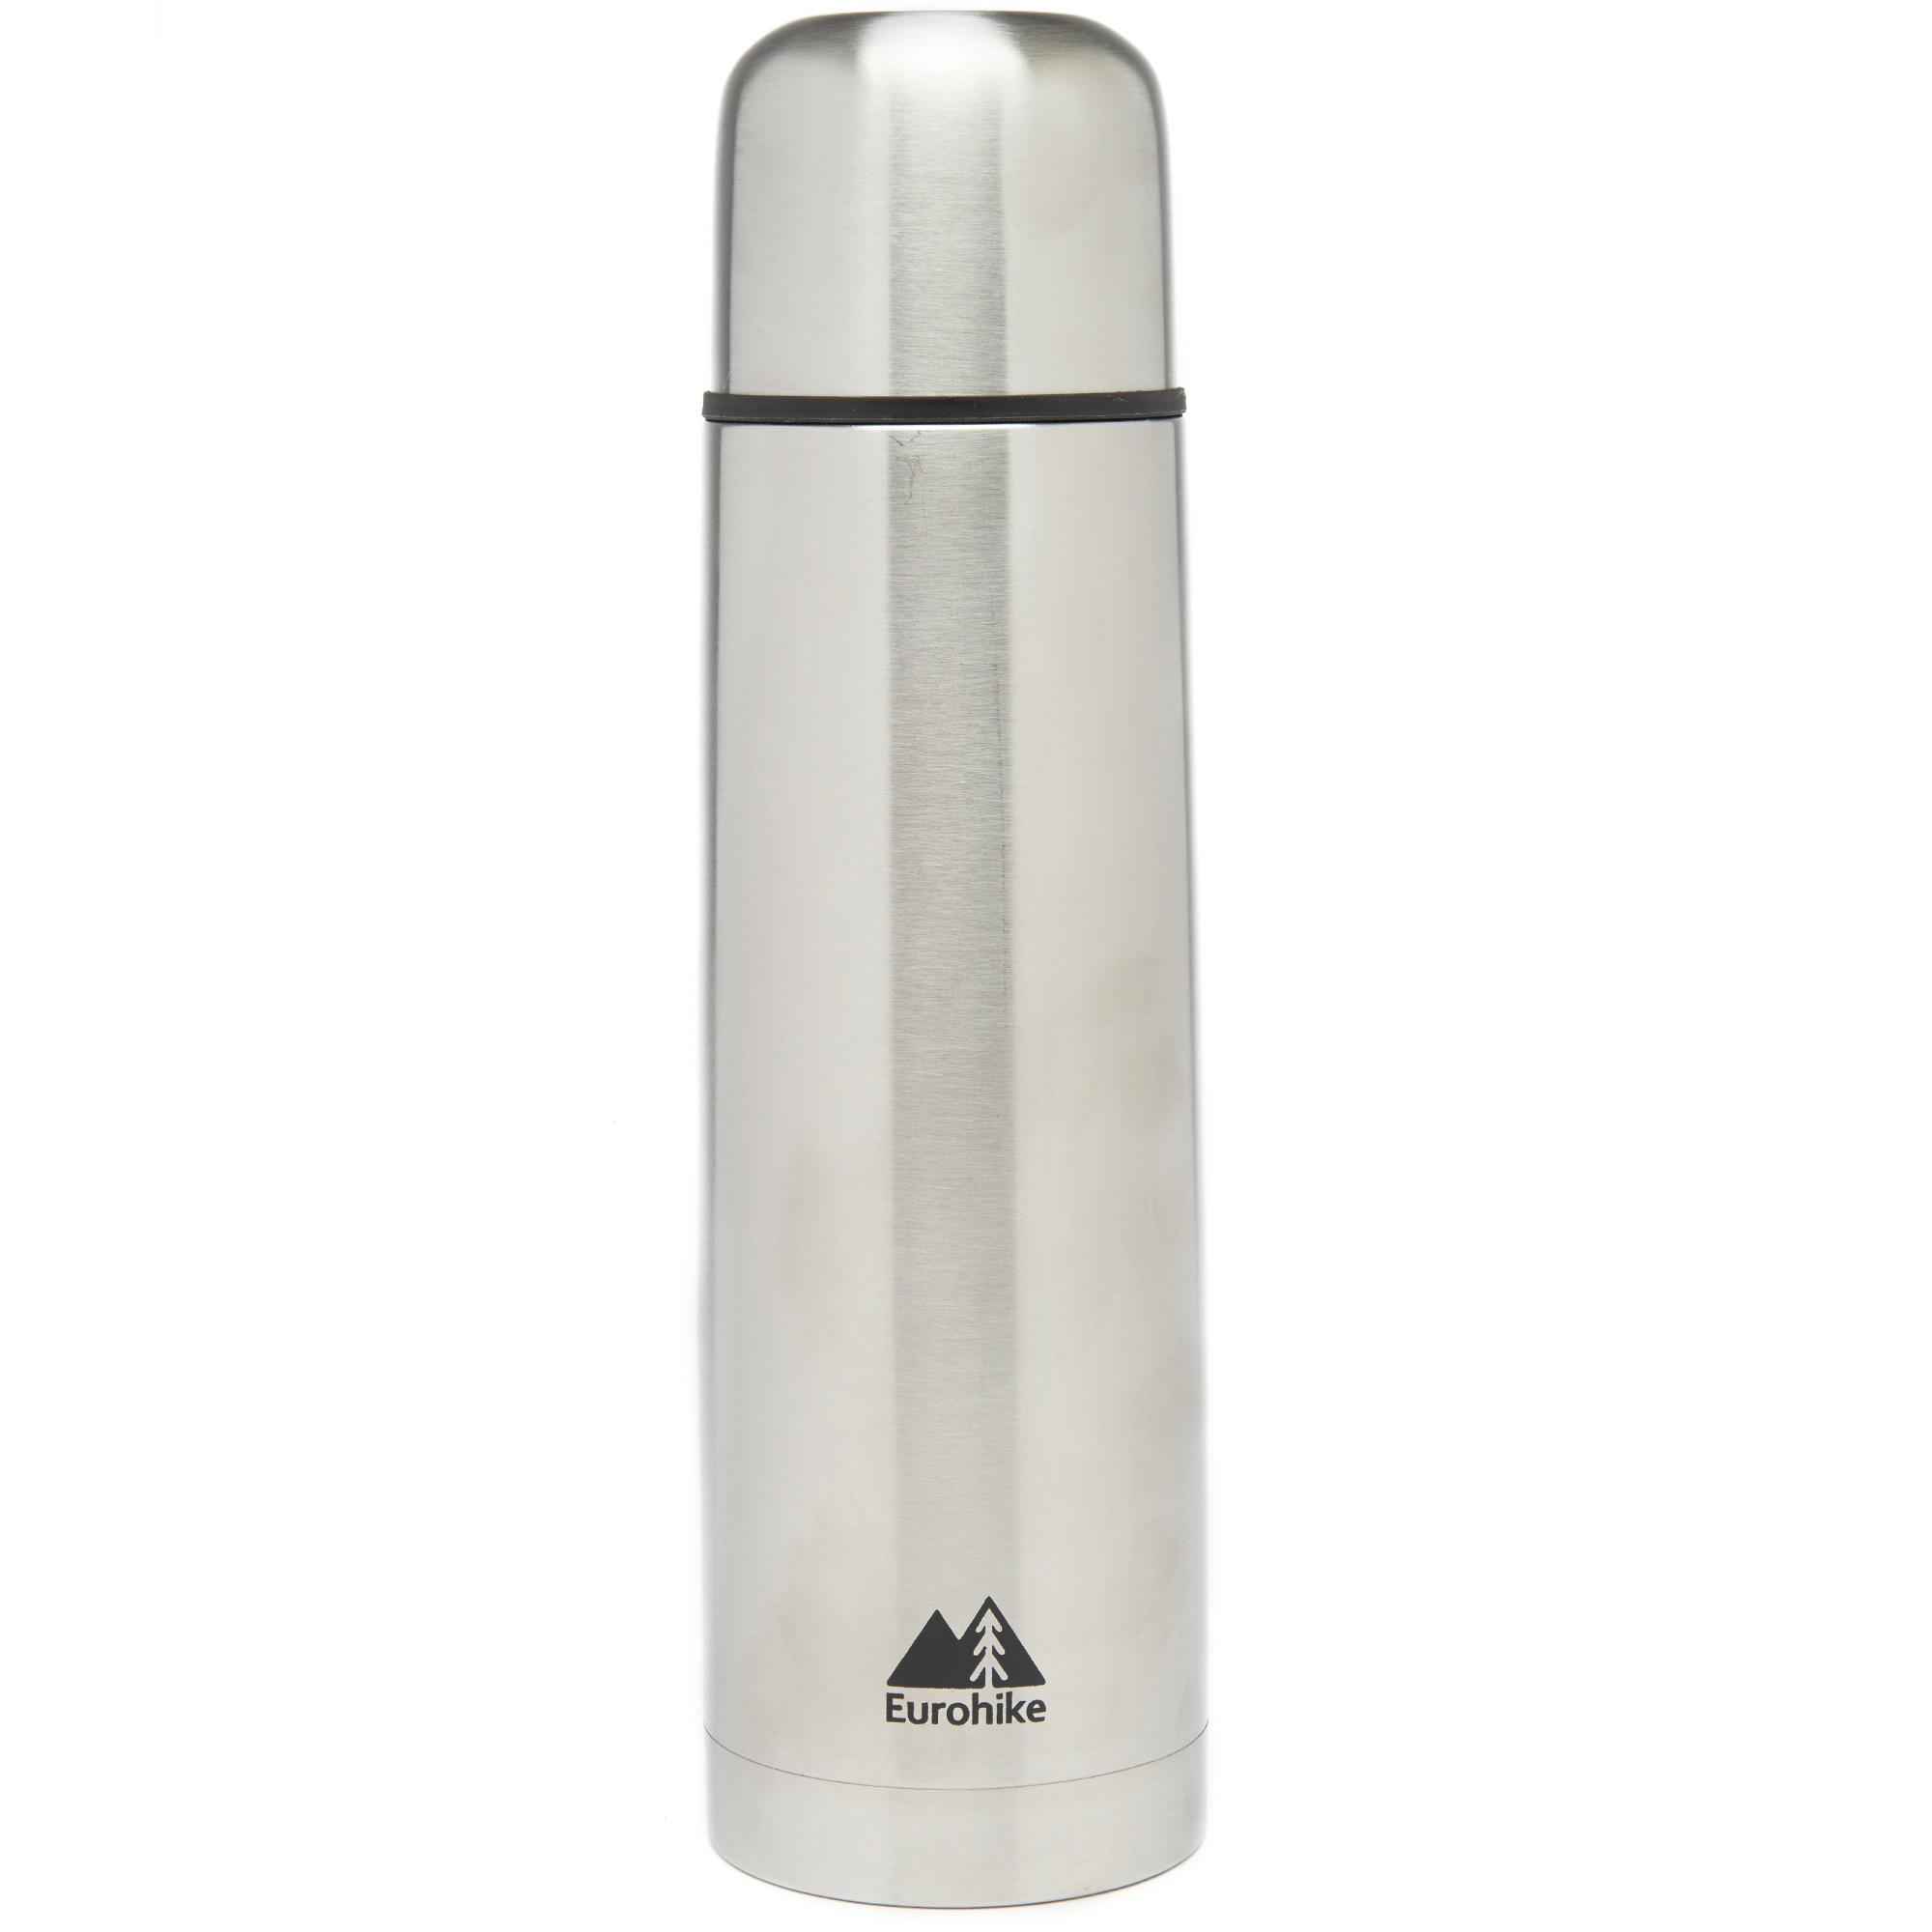 Eurohike Stainless Steel Flask 1L - Sil, SIL